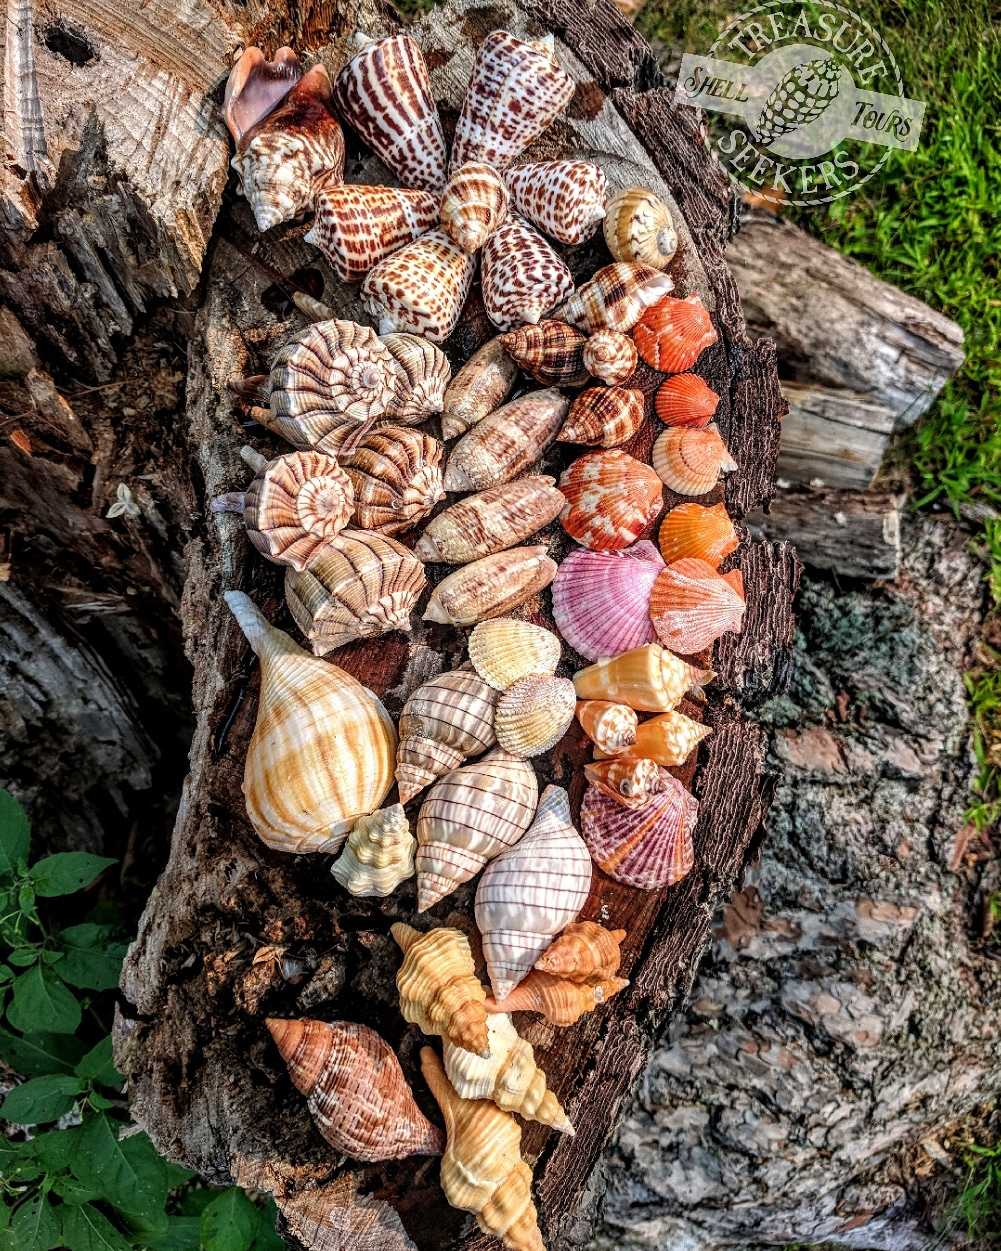 Some of the great collection of shells found during a Treasure Seekers Shell Tour trip.